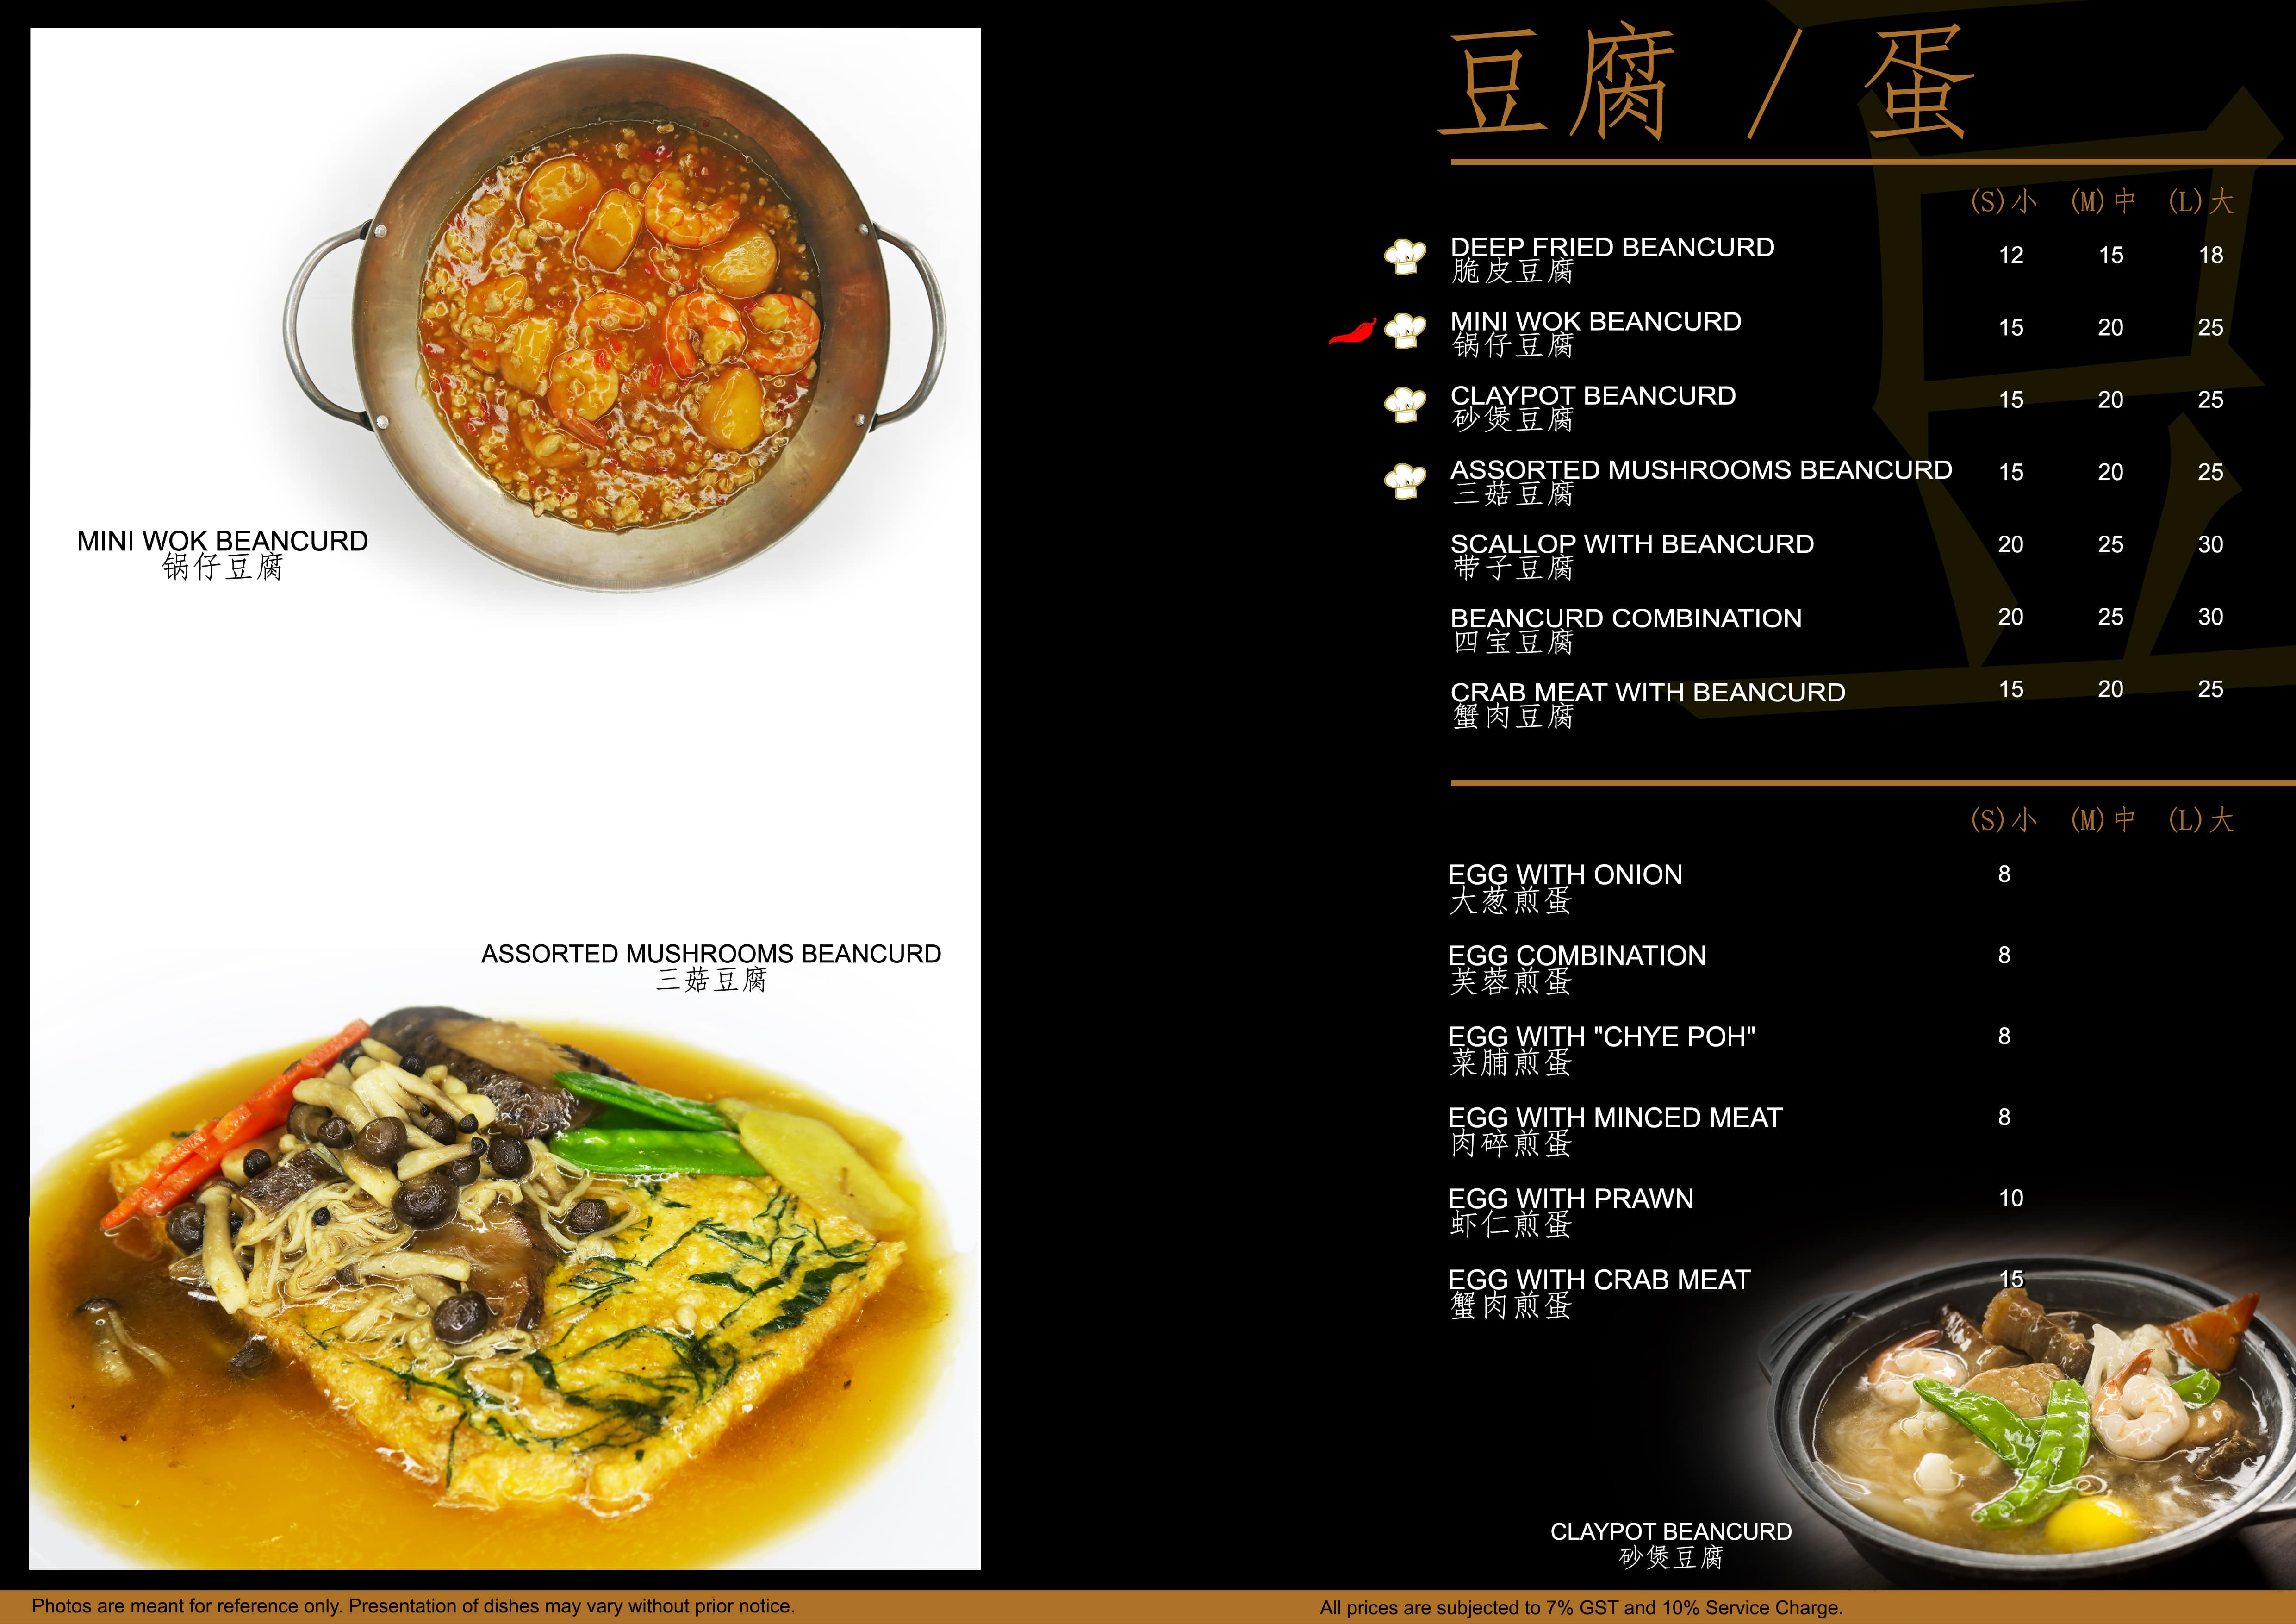 Uncle Leong Seafood - Beancurd and Egg Menu - TREAT